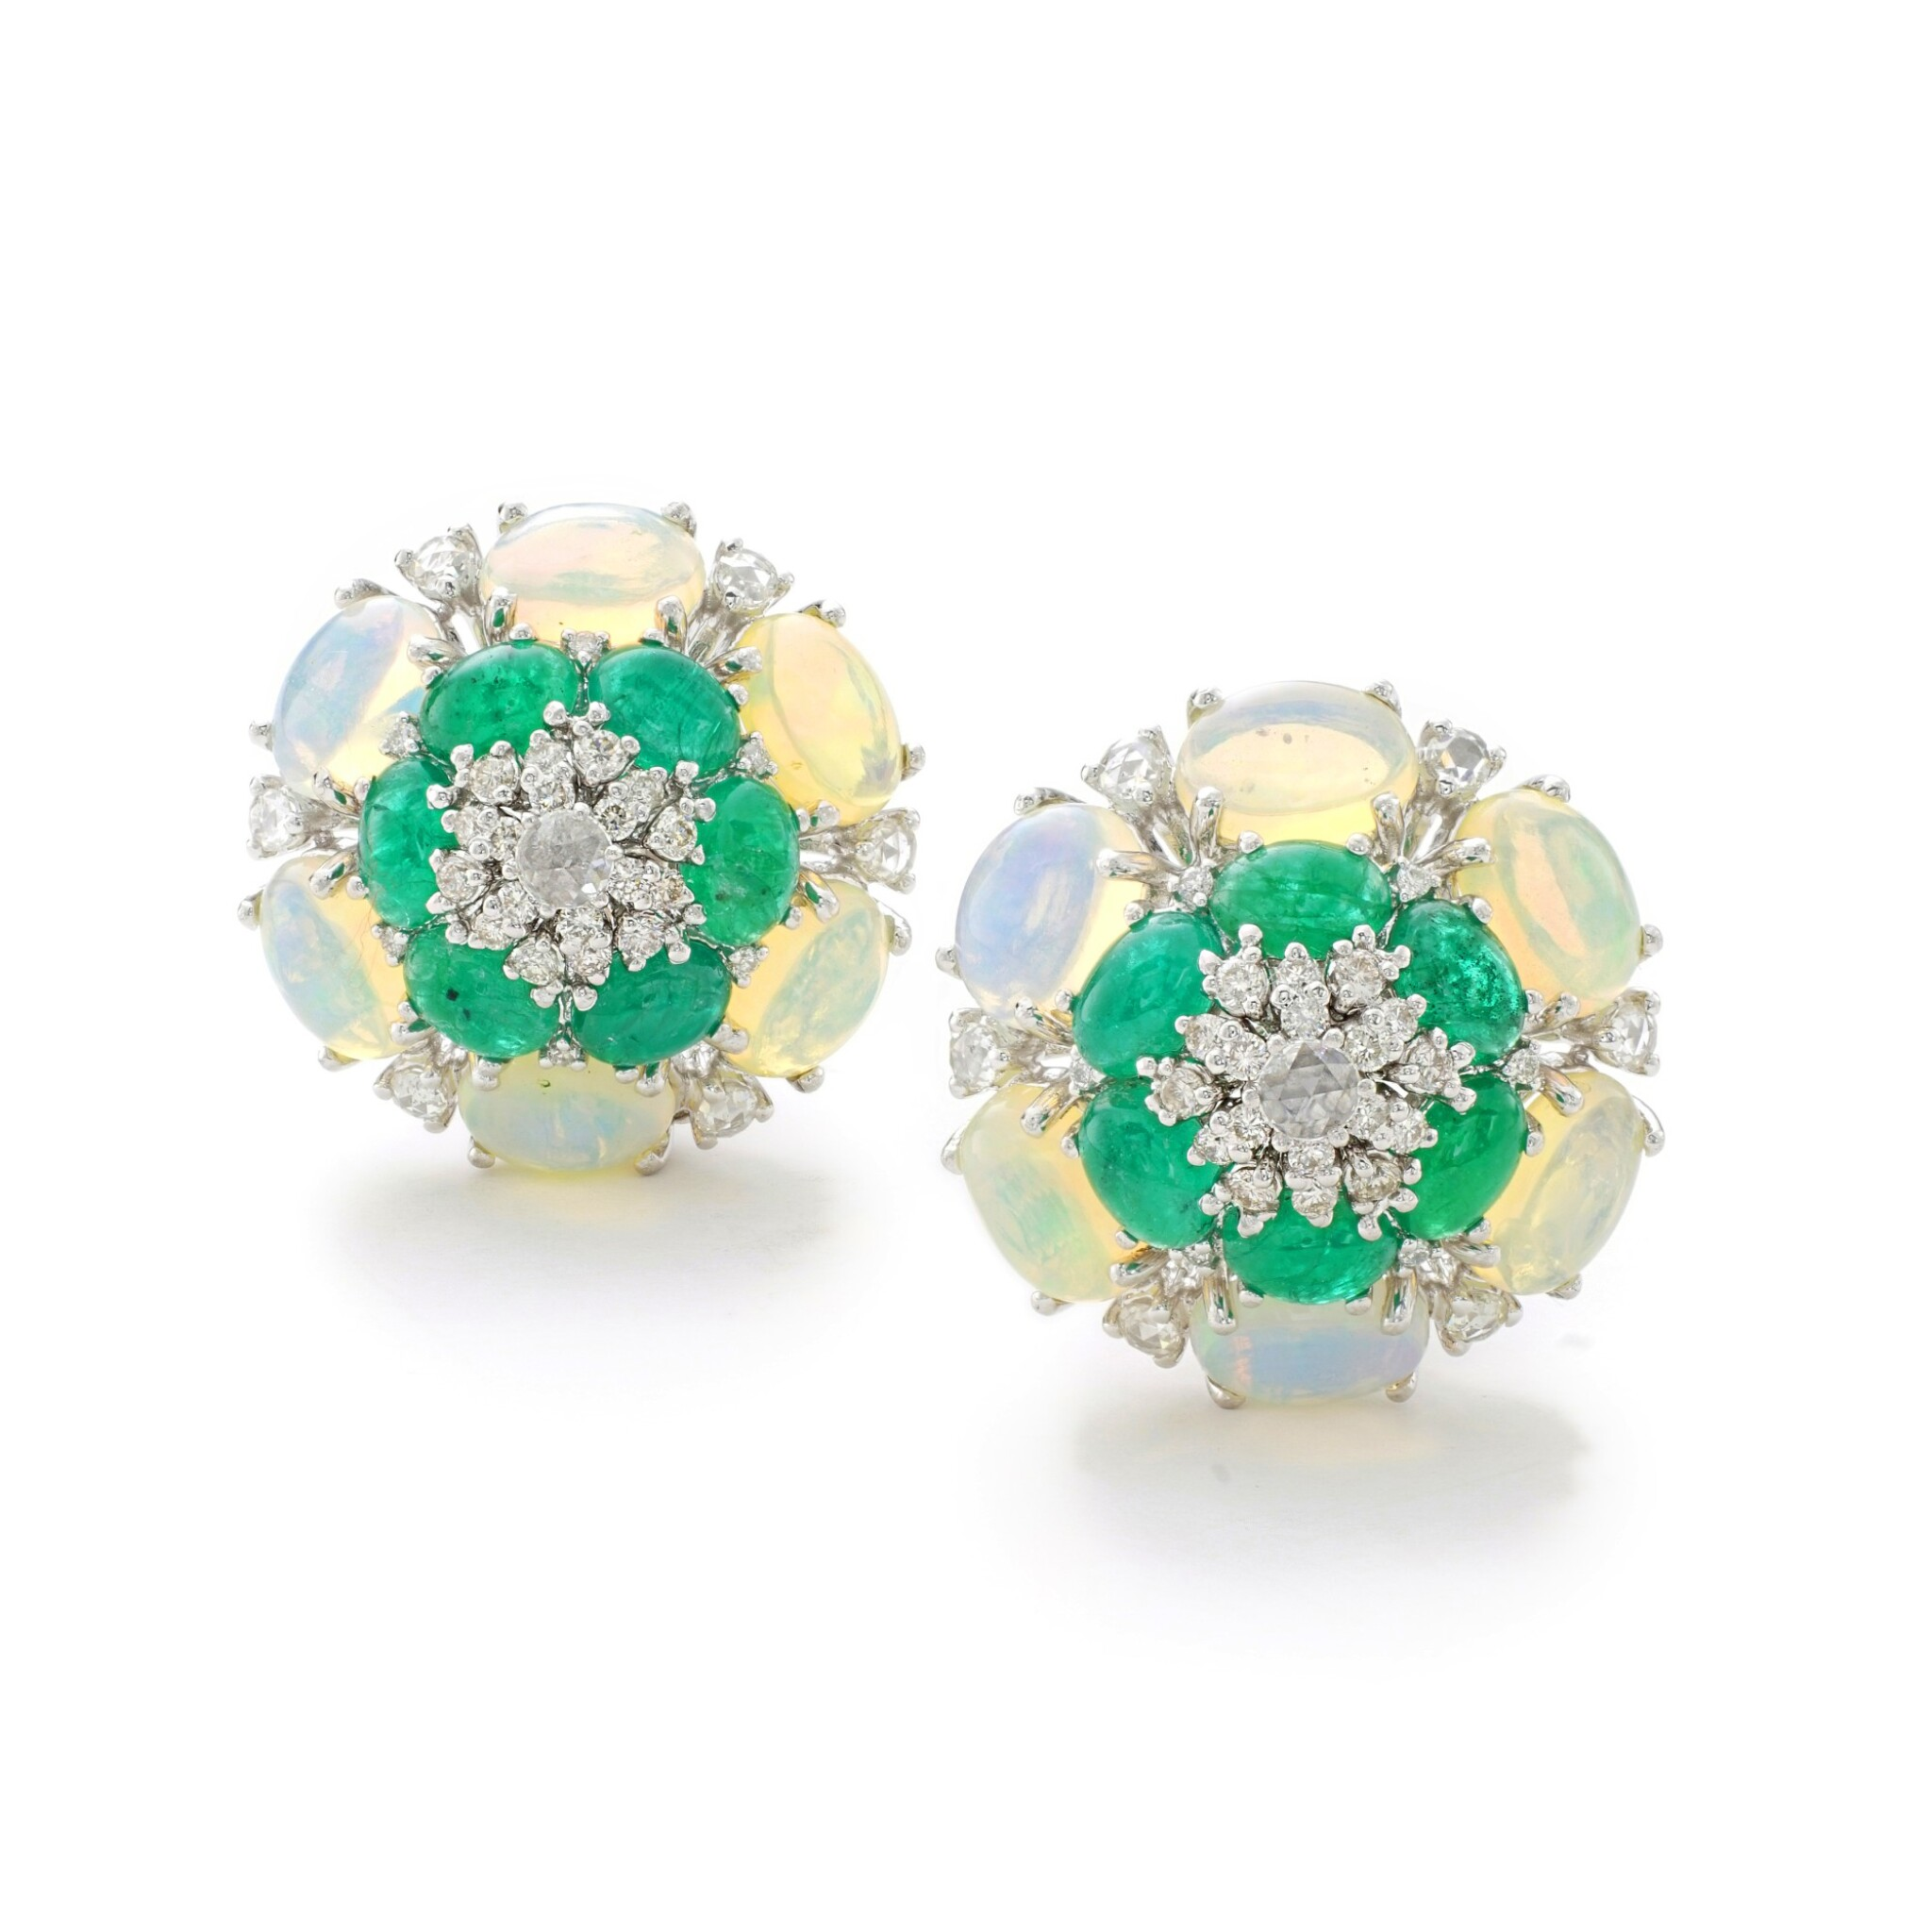 View full screen - View 1 of Lot 14. MICHELE DELLA VALLE   PAIR OF EMERALD, OPAL AND DIAMOND EAR CLIPS.